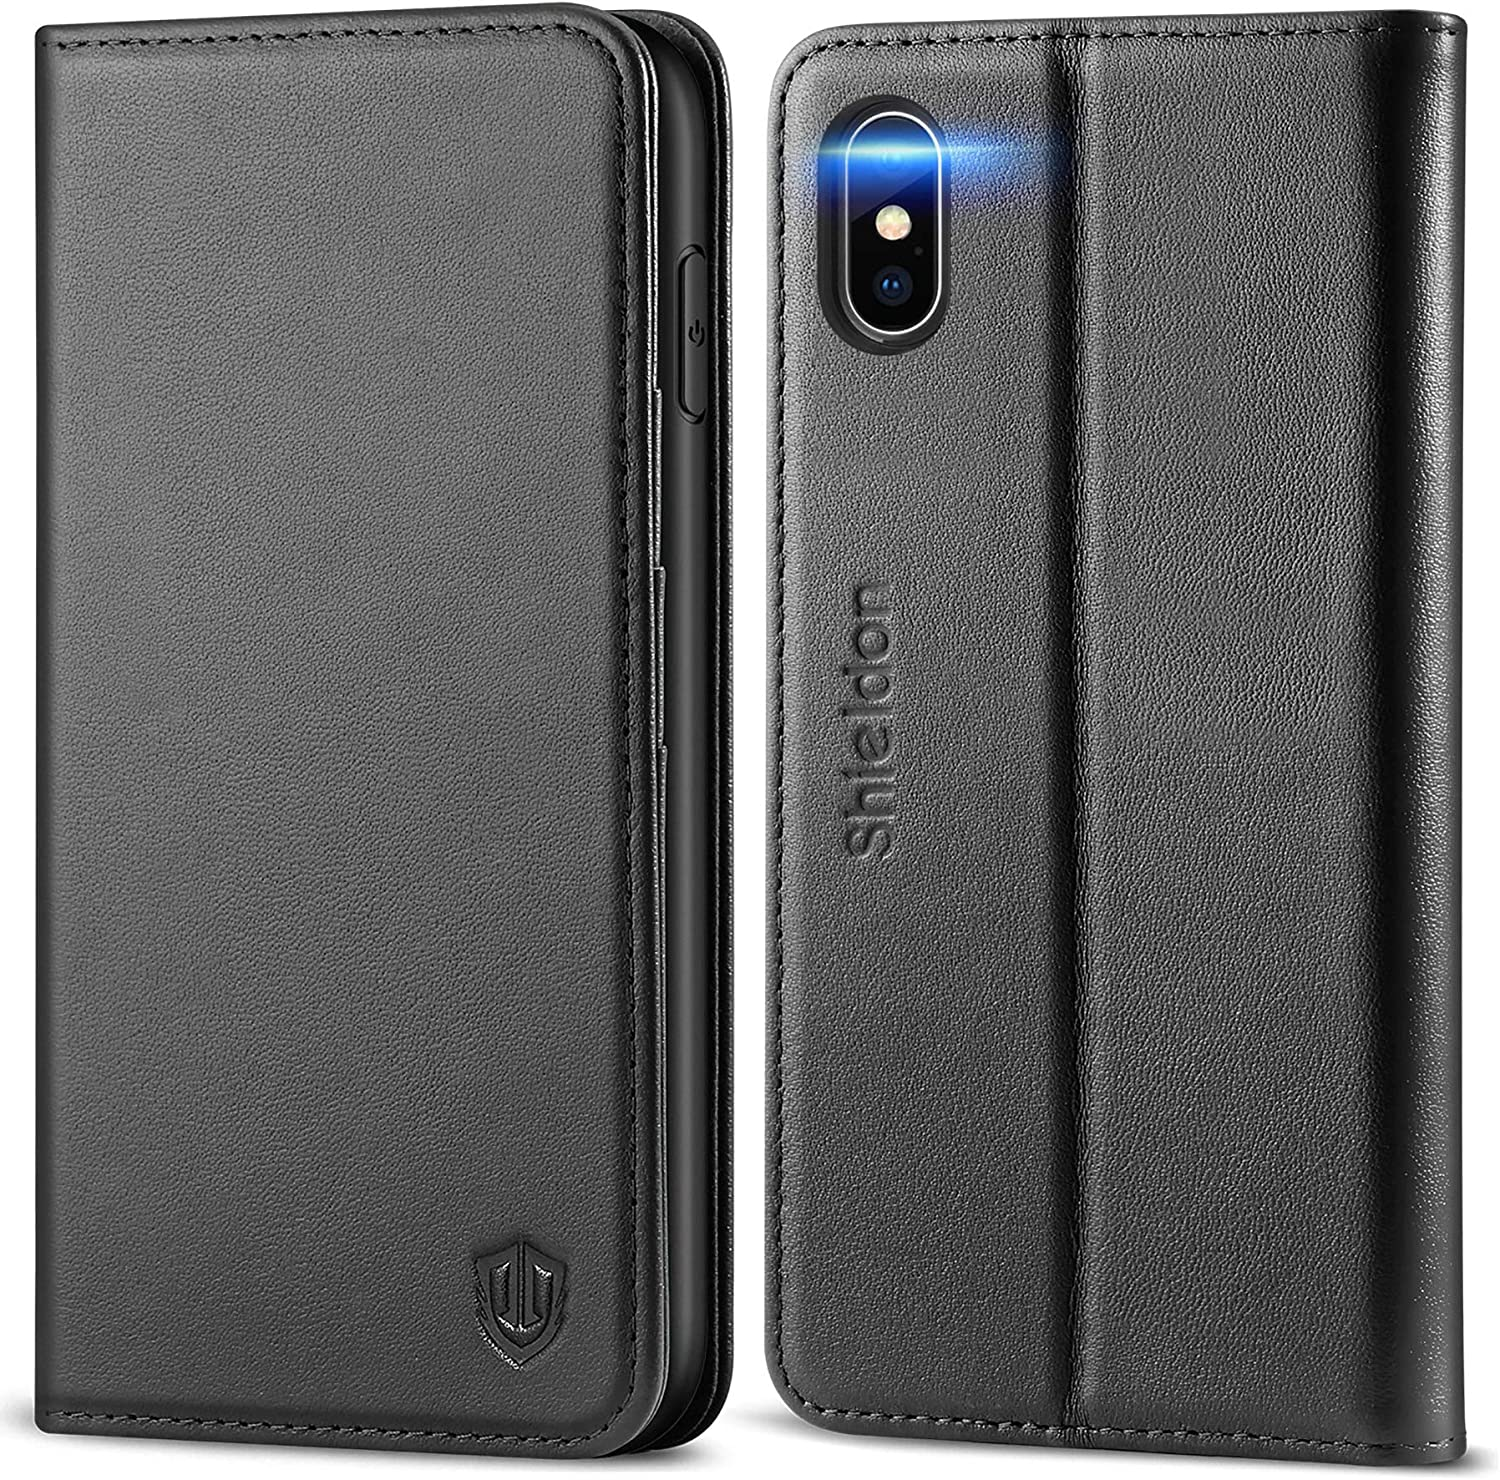 SHIELDON iPhone Xs Max Case, Genuine Leather iPhone Xs Max Wallet Case Auto Wake Sleep RFID Blocking Credit Card Slot Flip Magnetic Stand Case Compatible with iPhone Xs Max (6.5-inch 2018) - Black